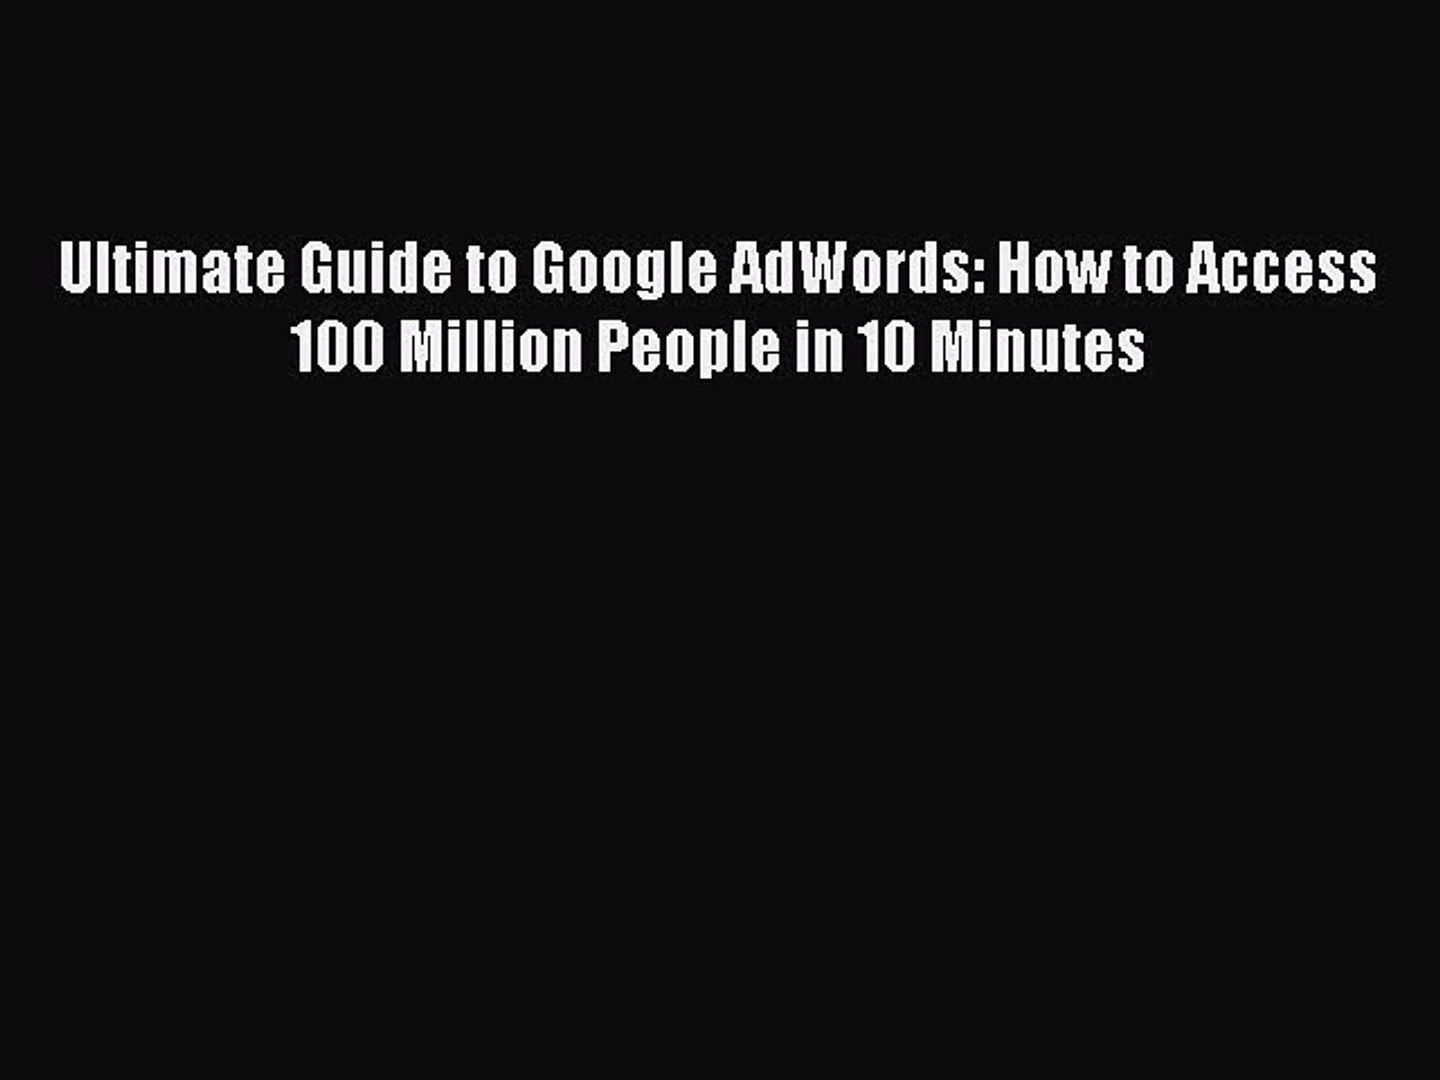 Read Ultimate Guide to Google AdWords: How to Access 100 Million People in 10 Minutes Ebook